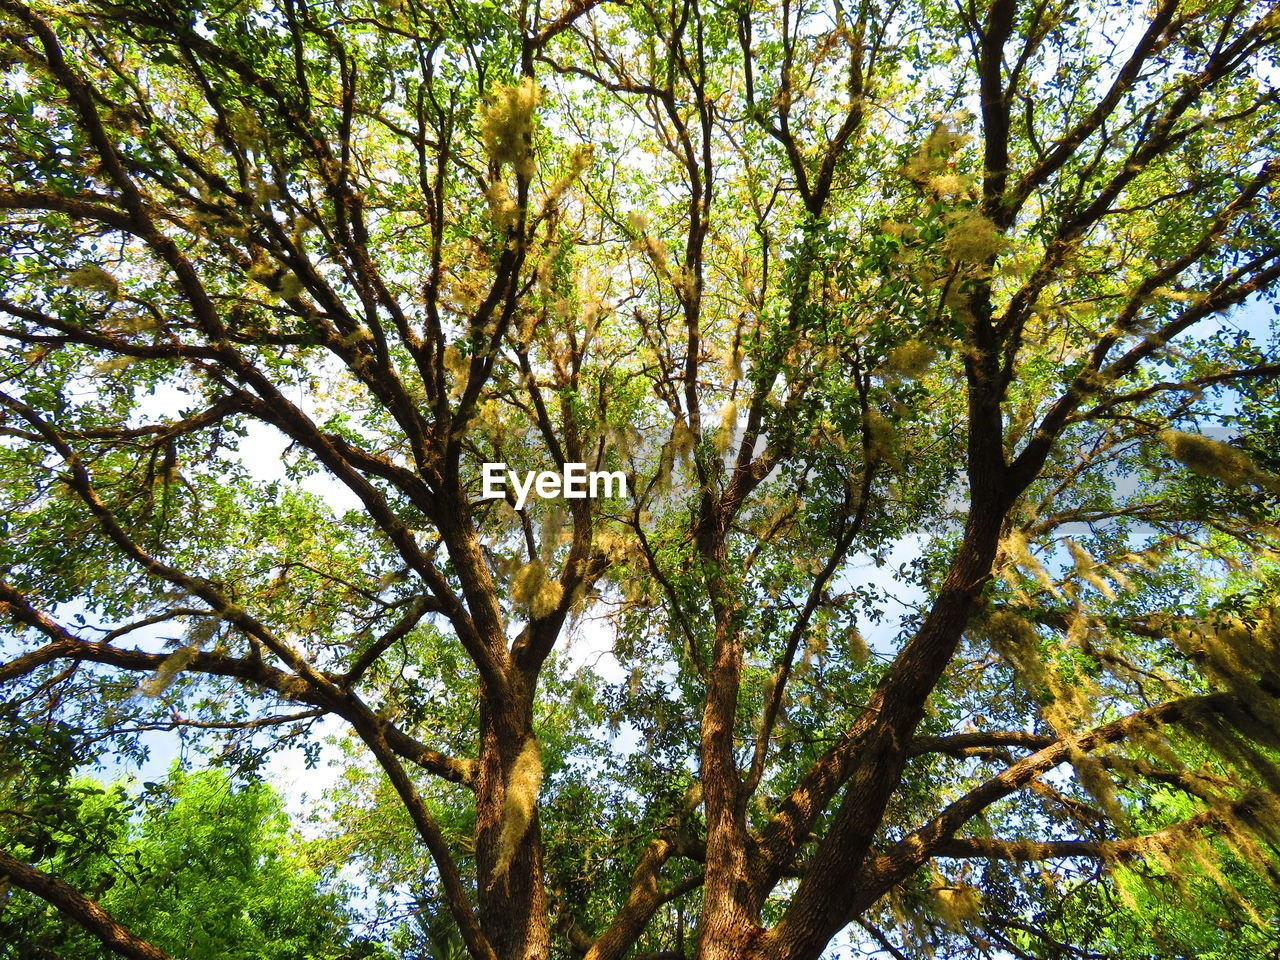 tree, plant, beauty in nature, low angle view, growth, nature, day, tranquility, branch, outdoors, green color, tree trunk, no people, tree canopy, trunk, full frame, land, forest, backgrounds, sunlight